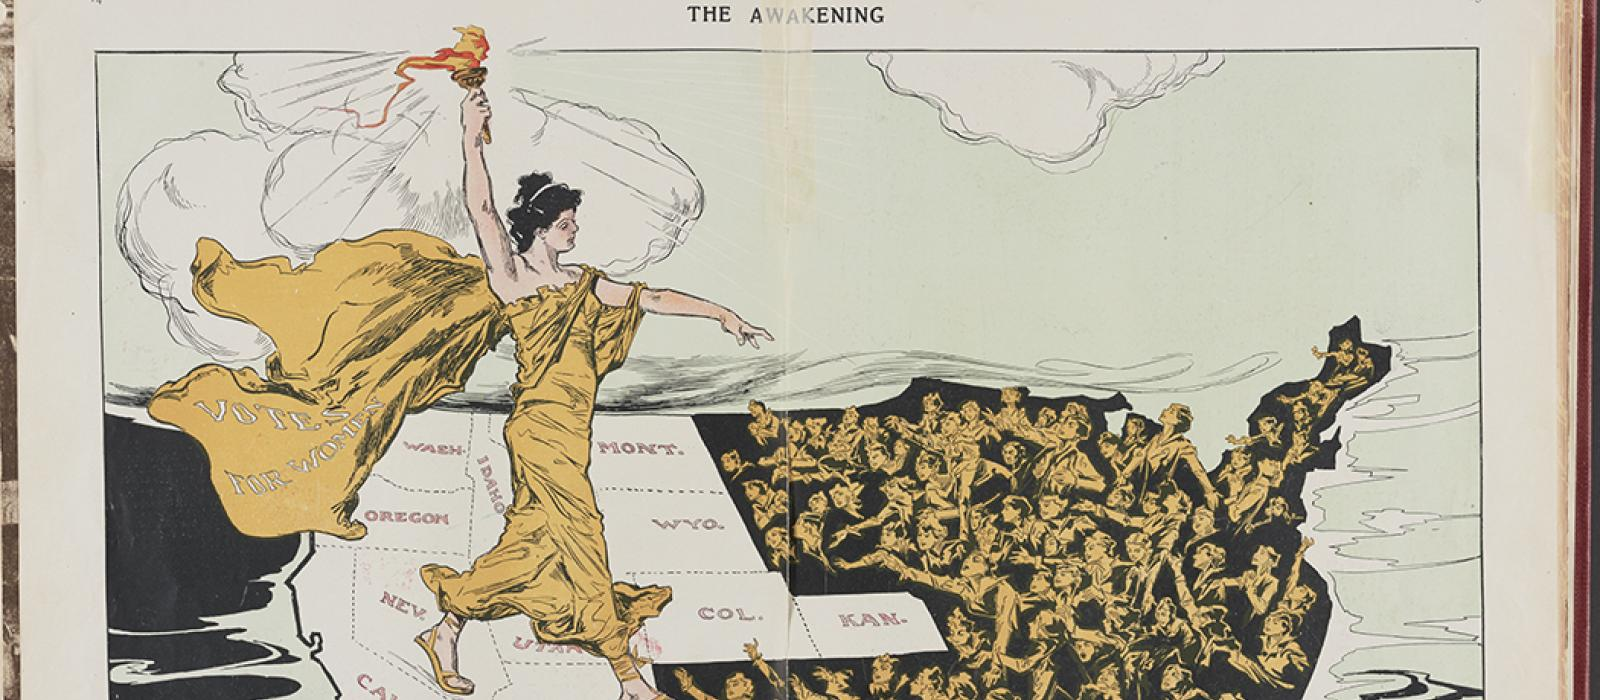 Illustration of a woman in classical garb walking across US map to bring women's suffrage to East Coast.